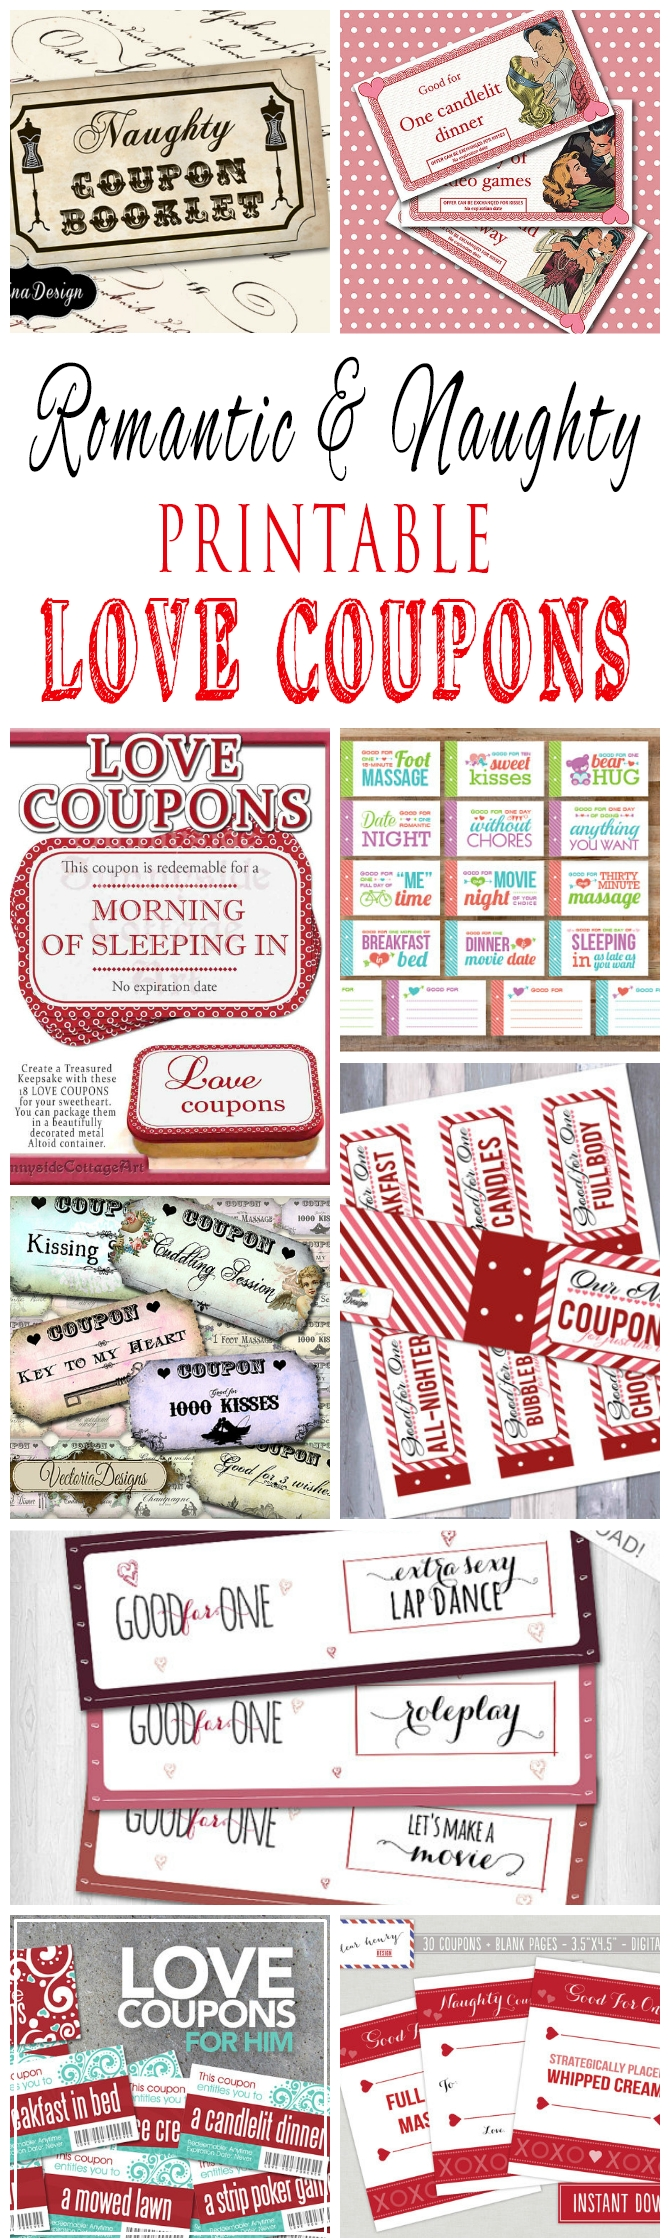 10 Unique Romantic Coupon Ideas For Him romantic and naughty printable love coupons for him glitter n spice 4 2020